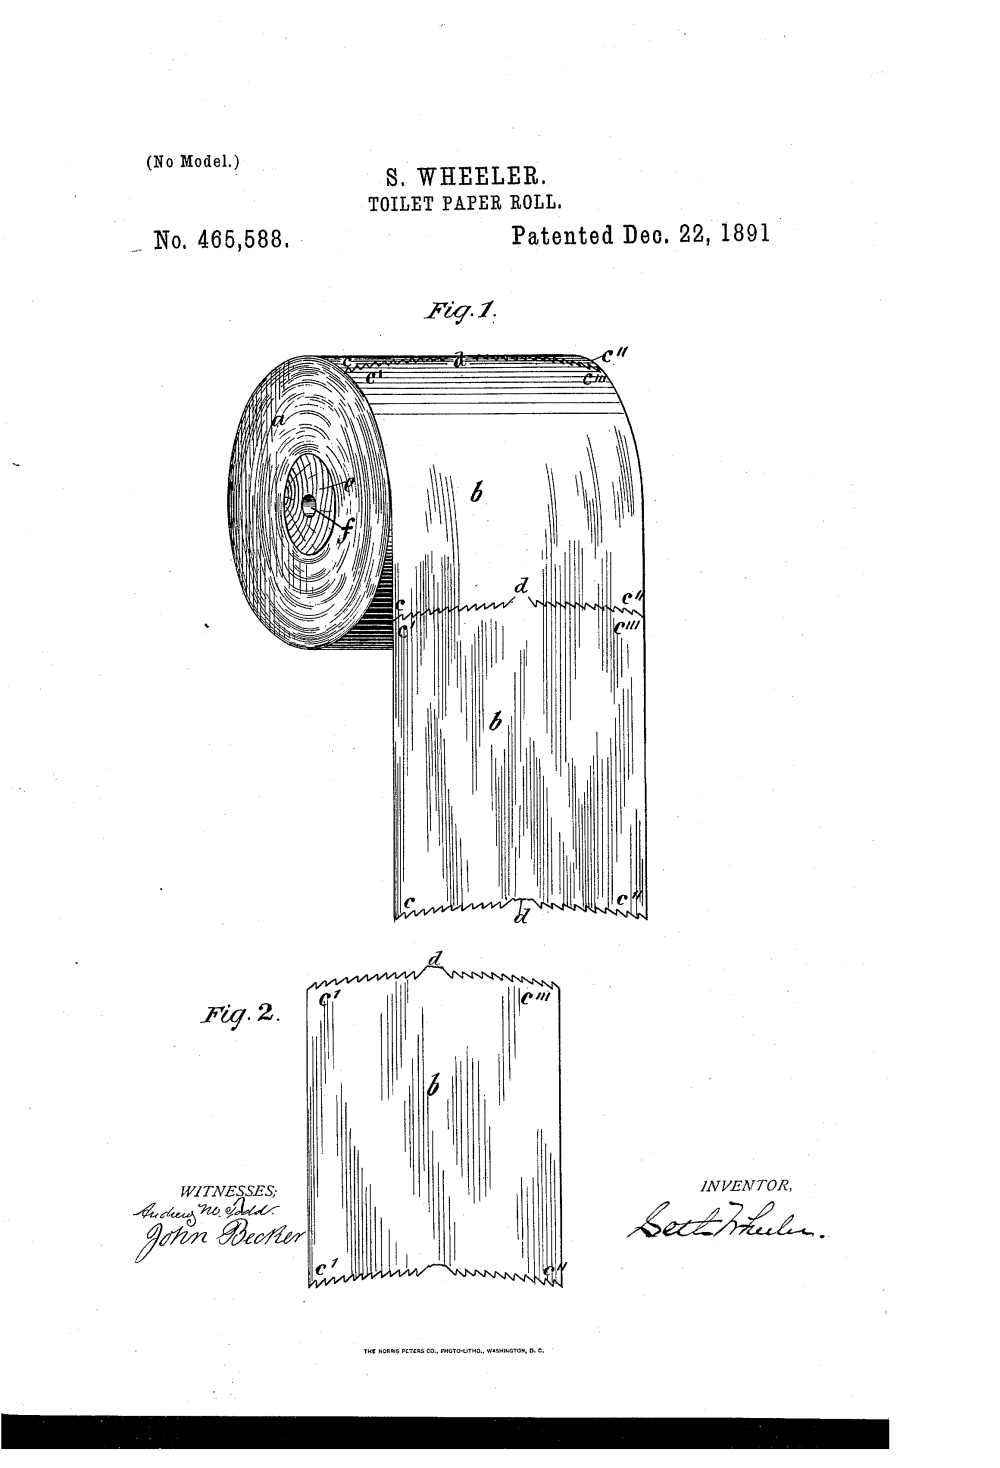 medium resolution of file toilet paper roll patent us465588 0 png